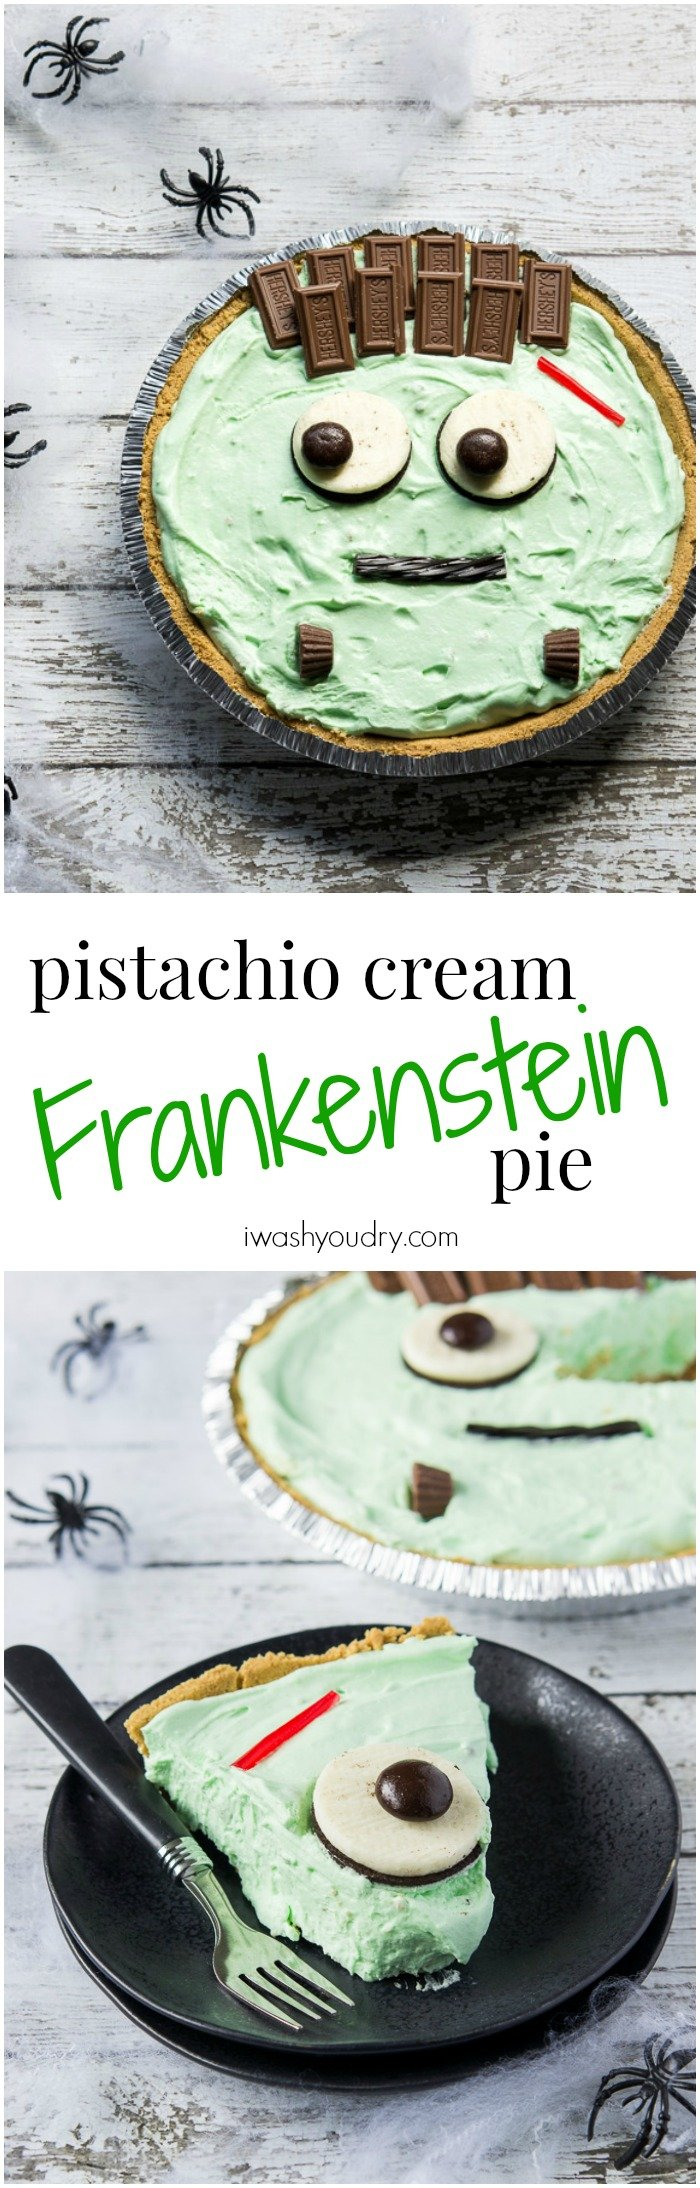 Pistachio Cream Frankenstein Pie! The perfect last-minute easy Halloween treat!